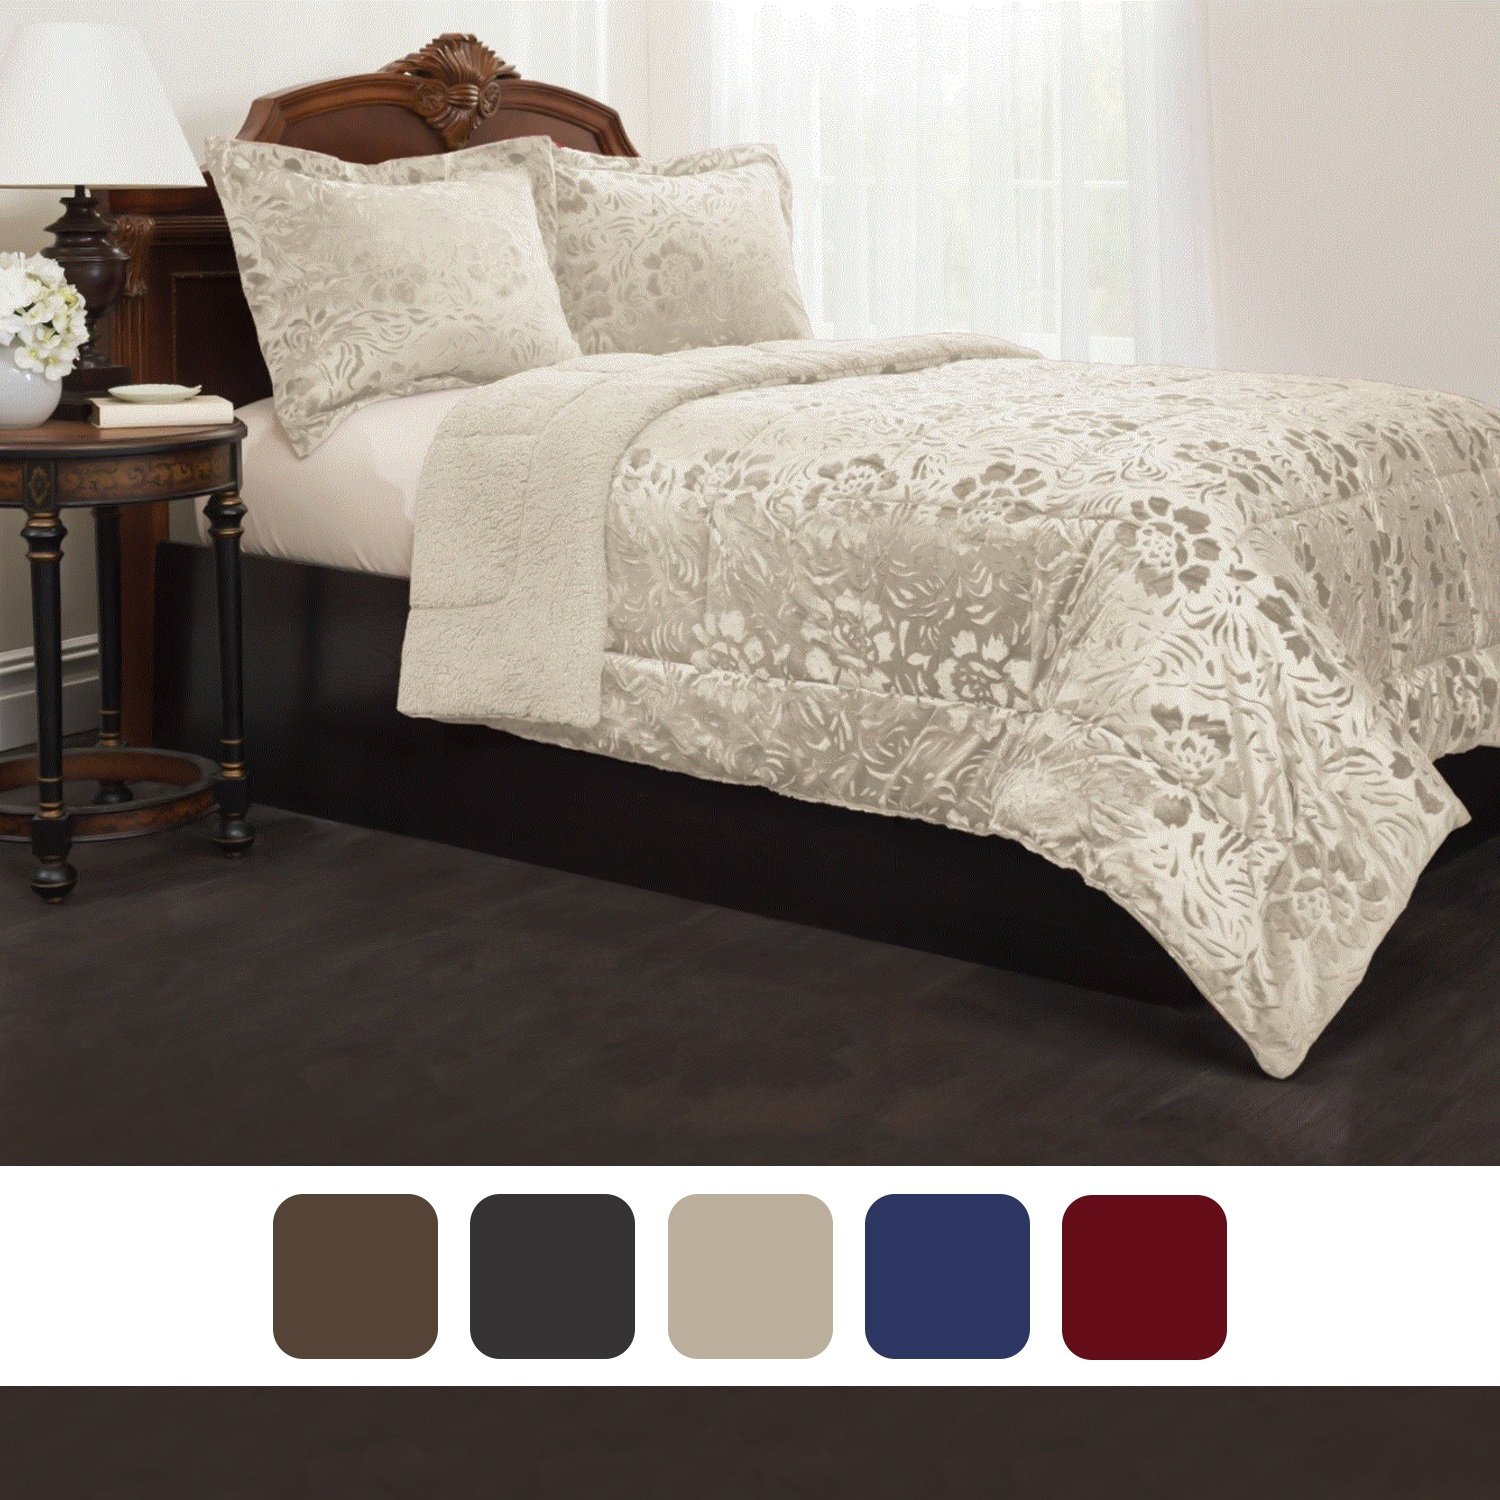 Sherpa Quilted Fleece Comforter Set Cozy Comfort /& Warm COMINHKR095952 Down Alternative Filling Options Of Colors /& Sizes Matching Pillow Shams Included